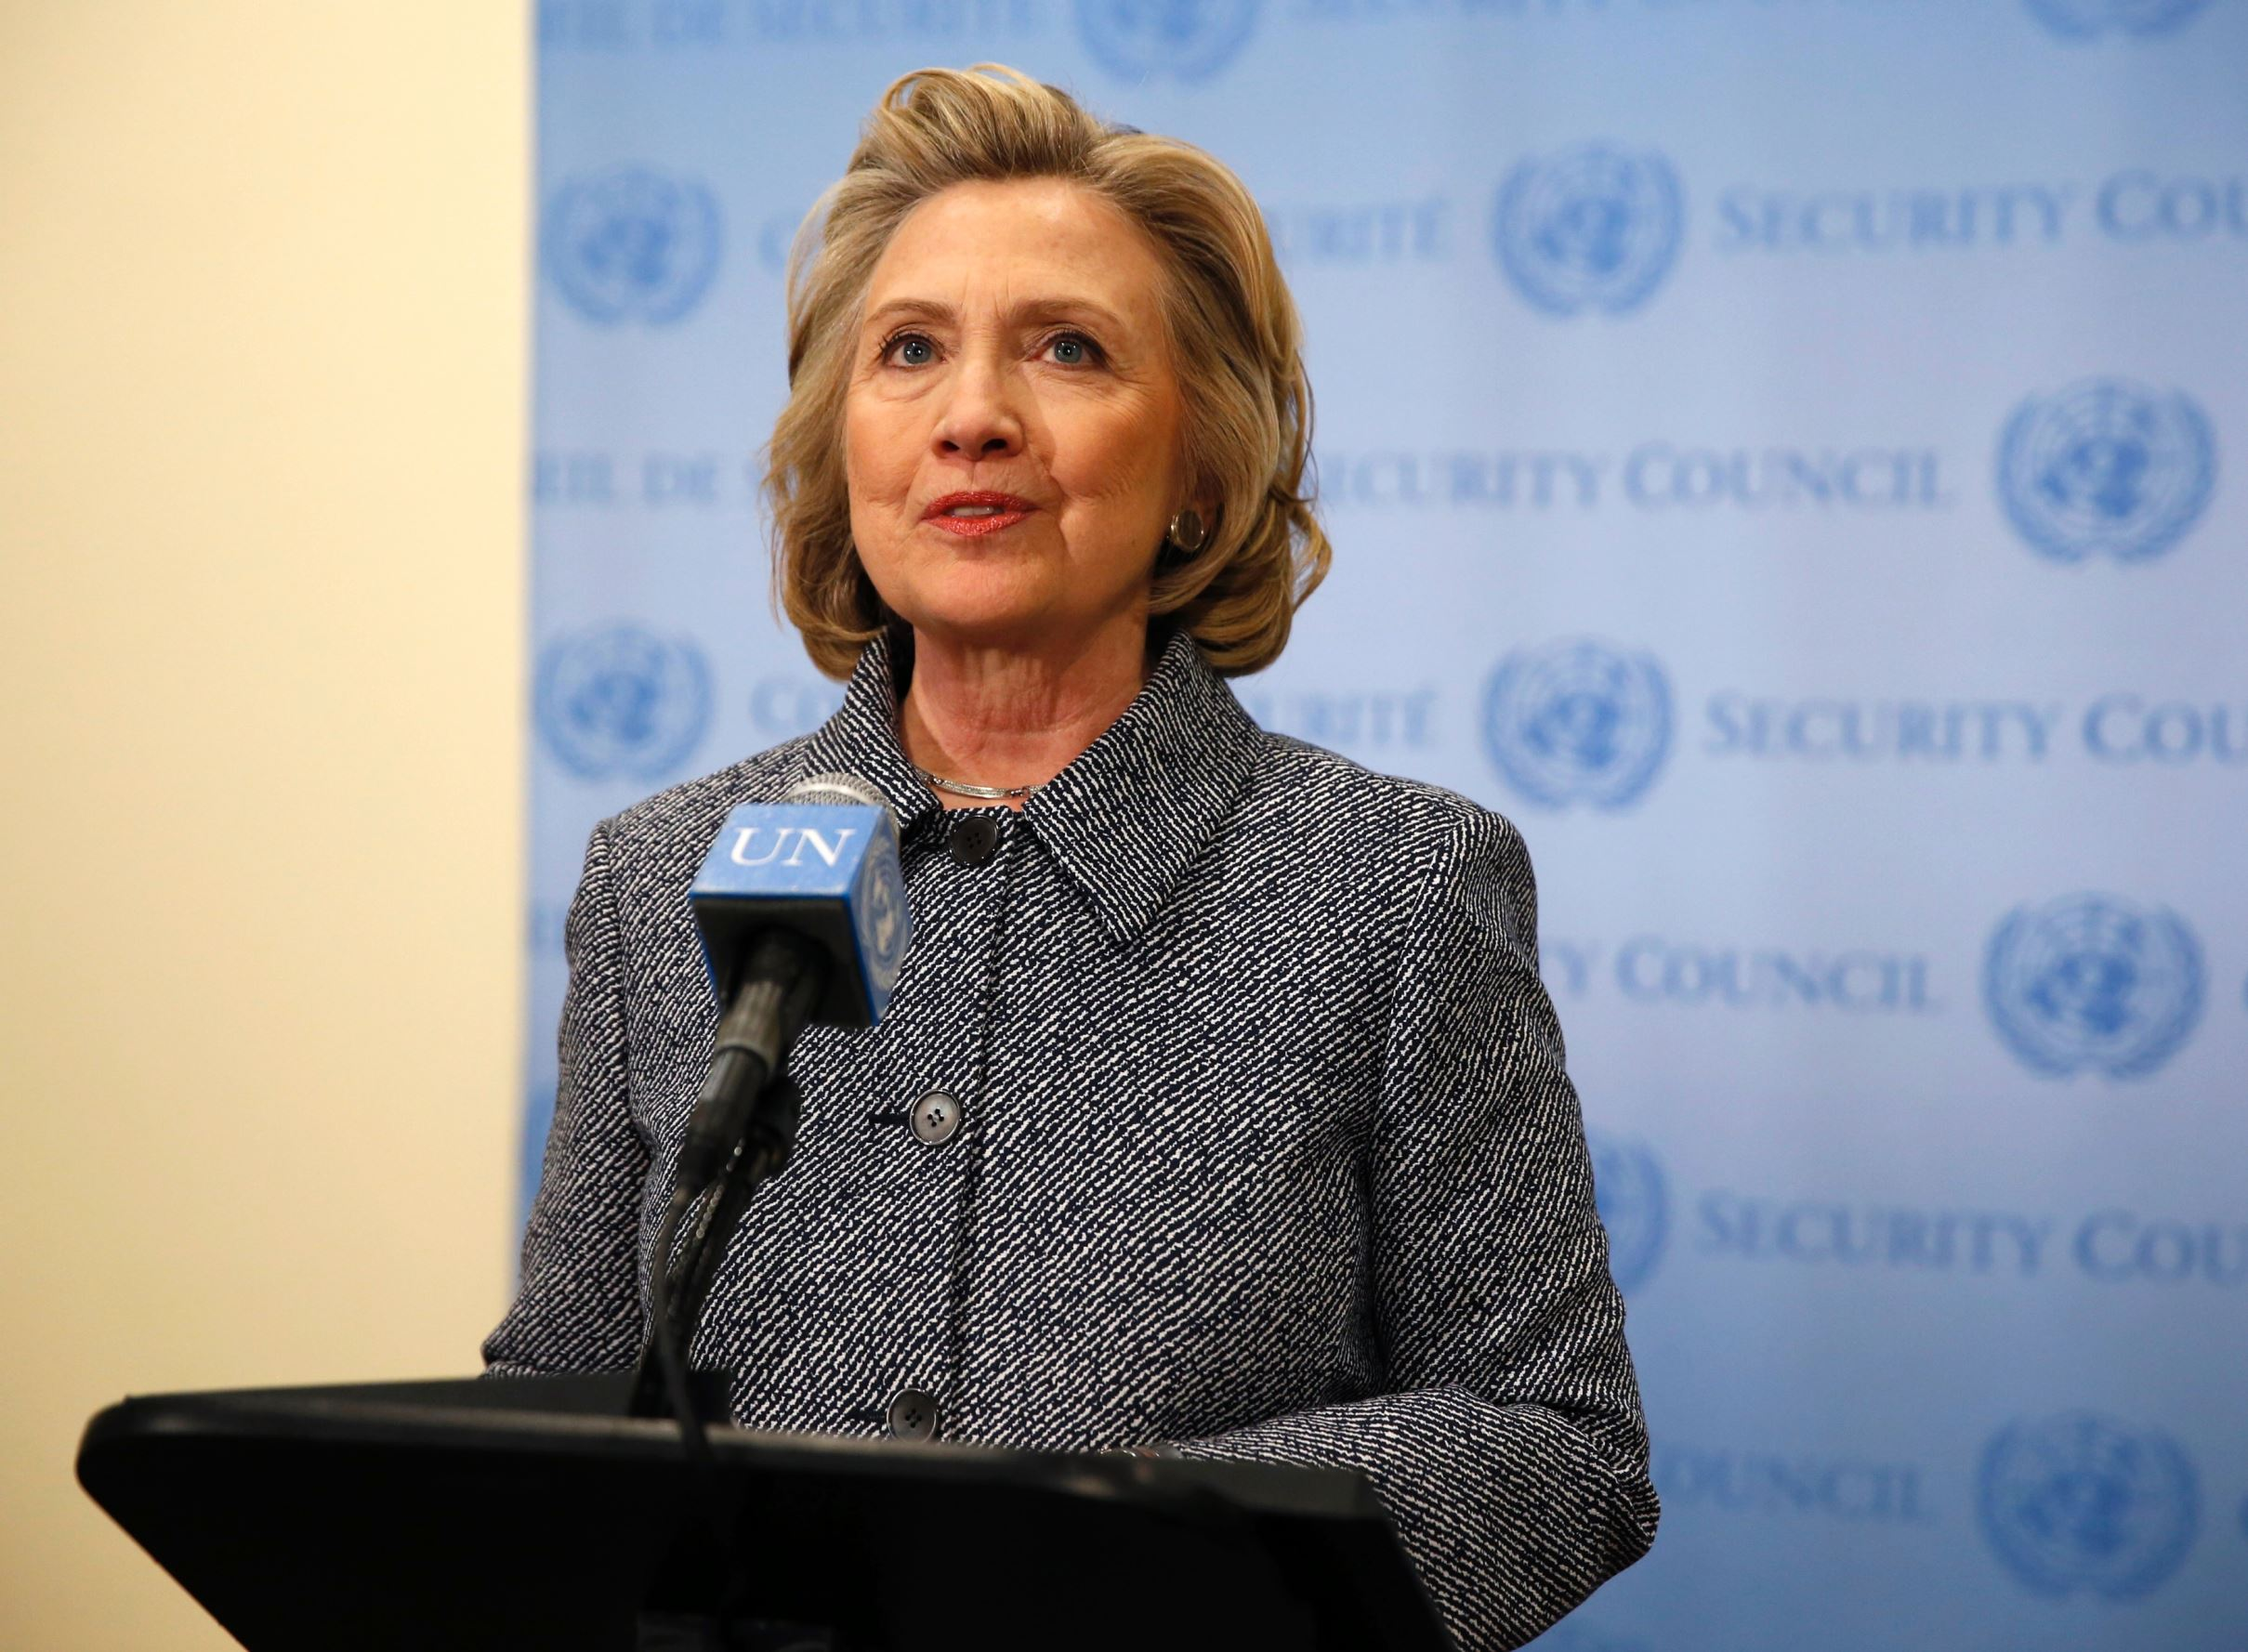 Former U.S. Secretary of State Hillary Clinton speaks during a press conference at the United Nations in New York March 10, 2015.